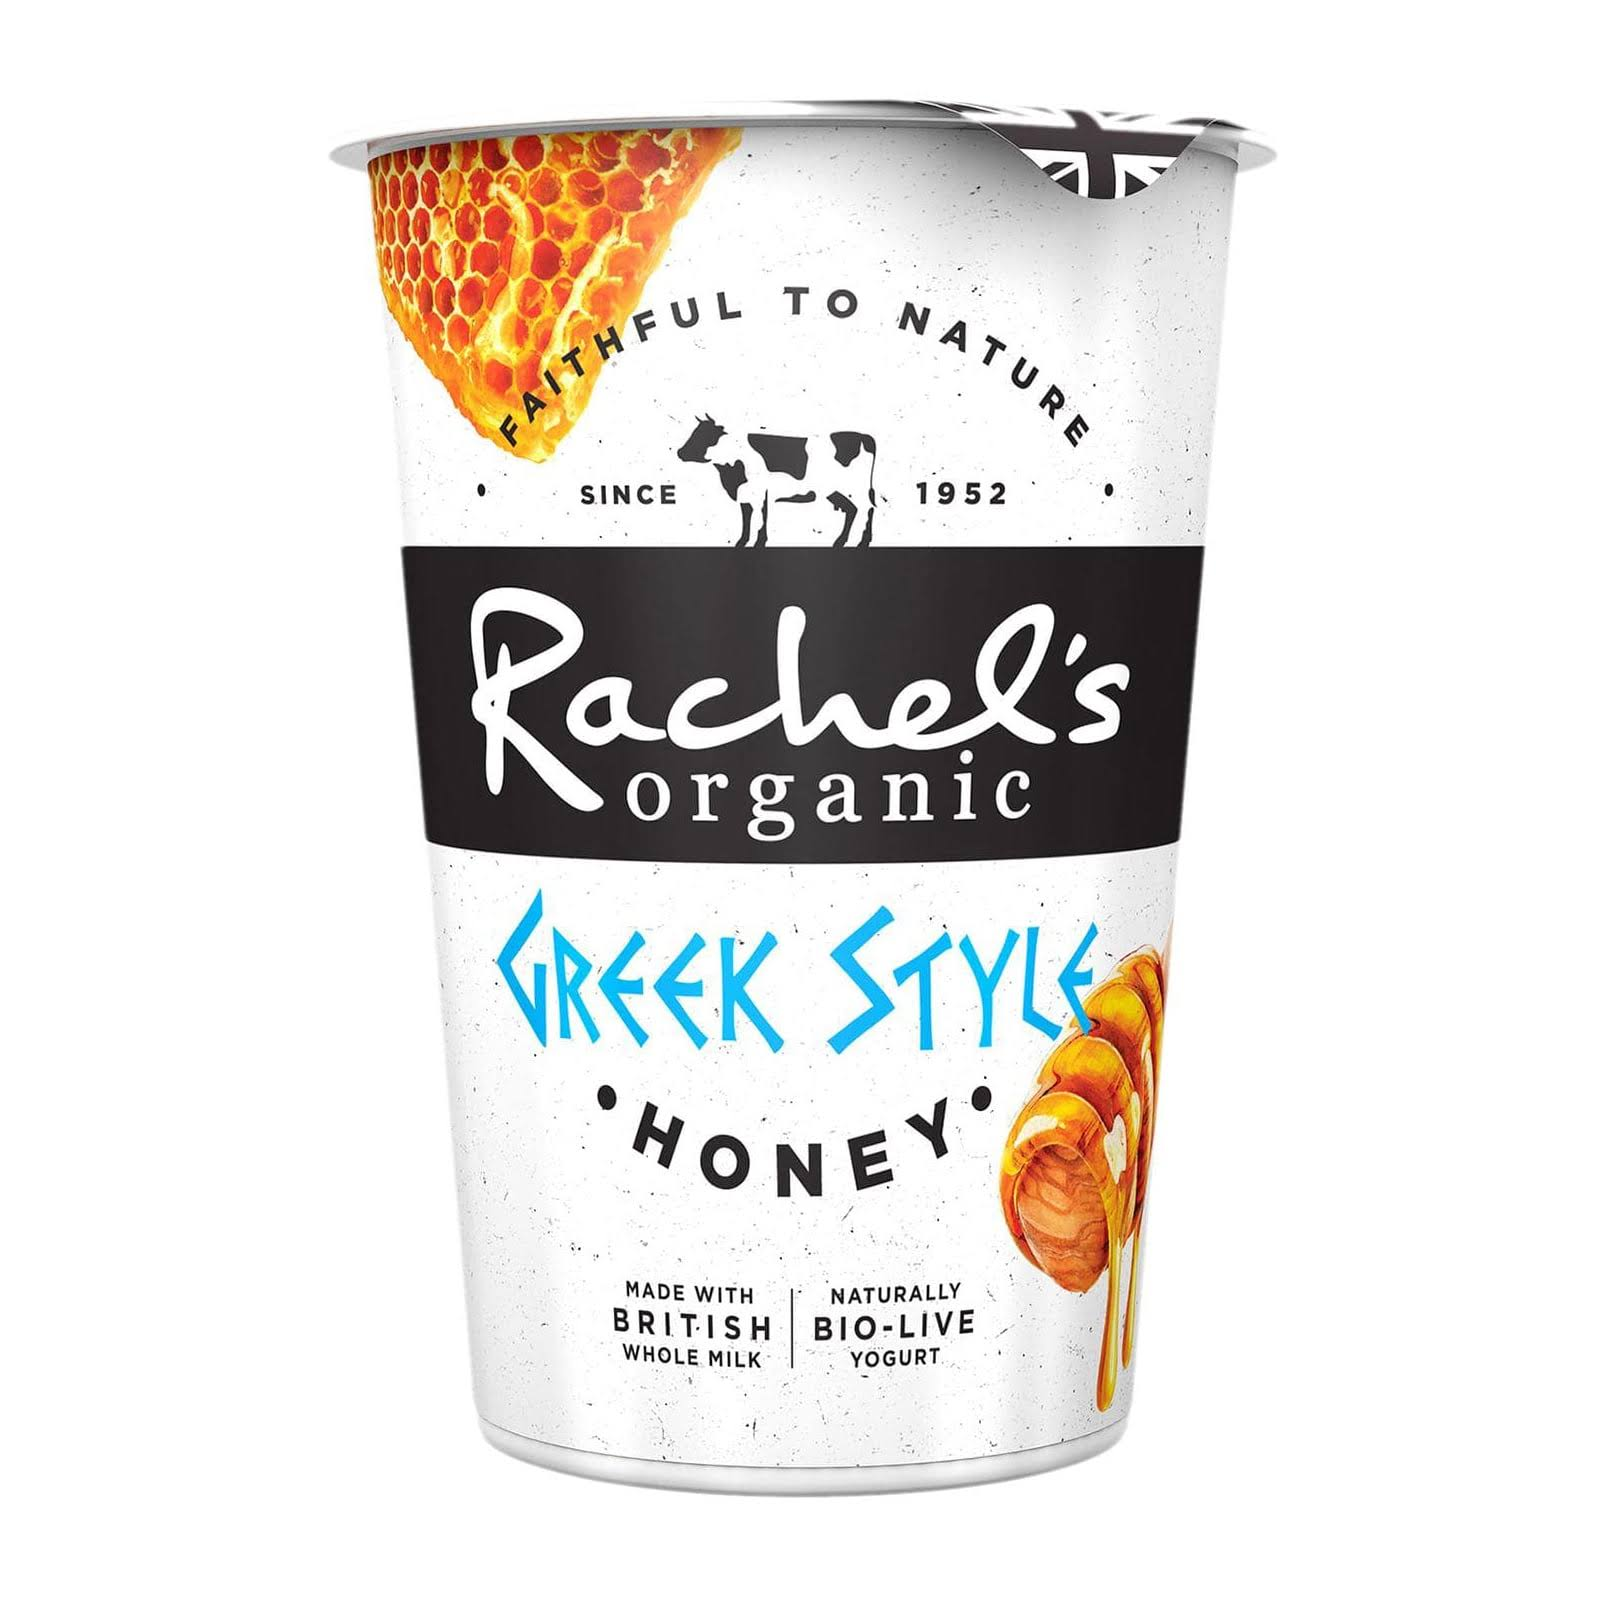 Rachel's Organic Greek Style Naturally Bio Live Yogurt - Honey, 450g